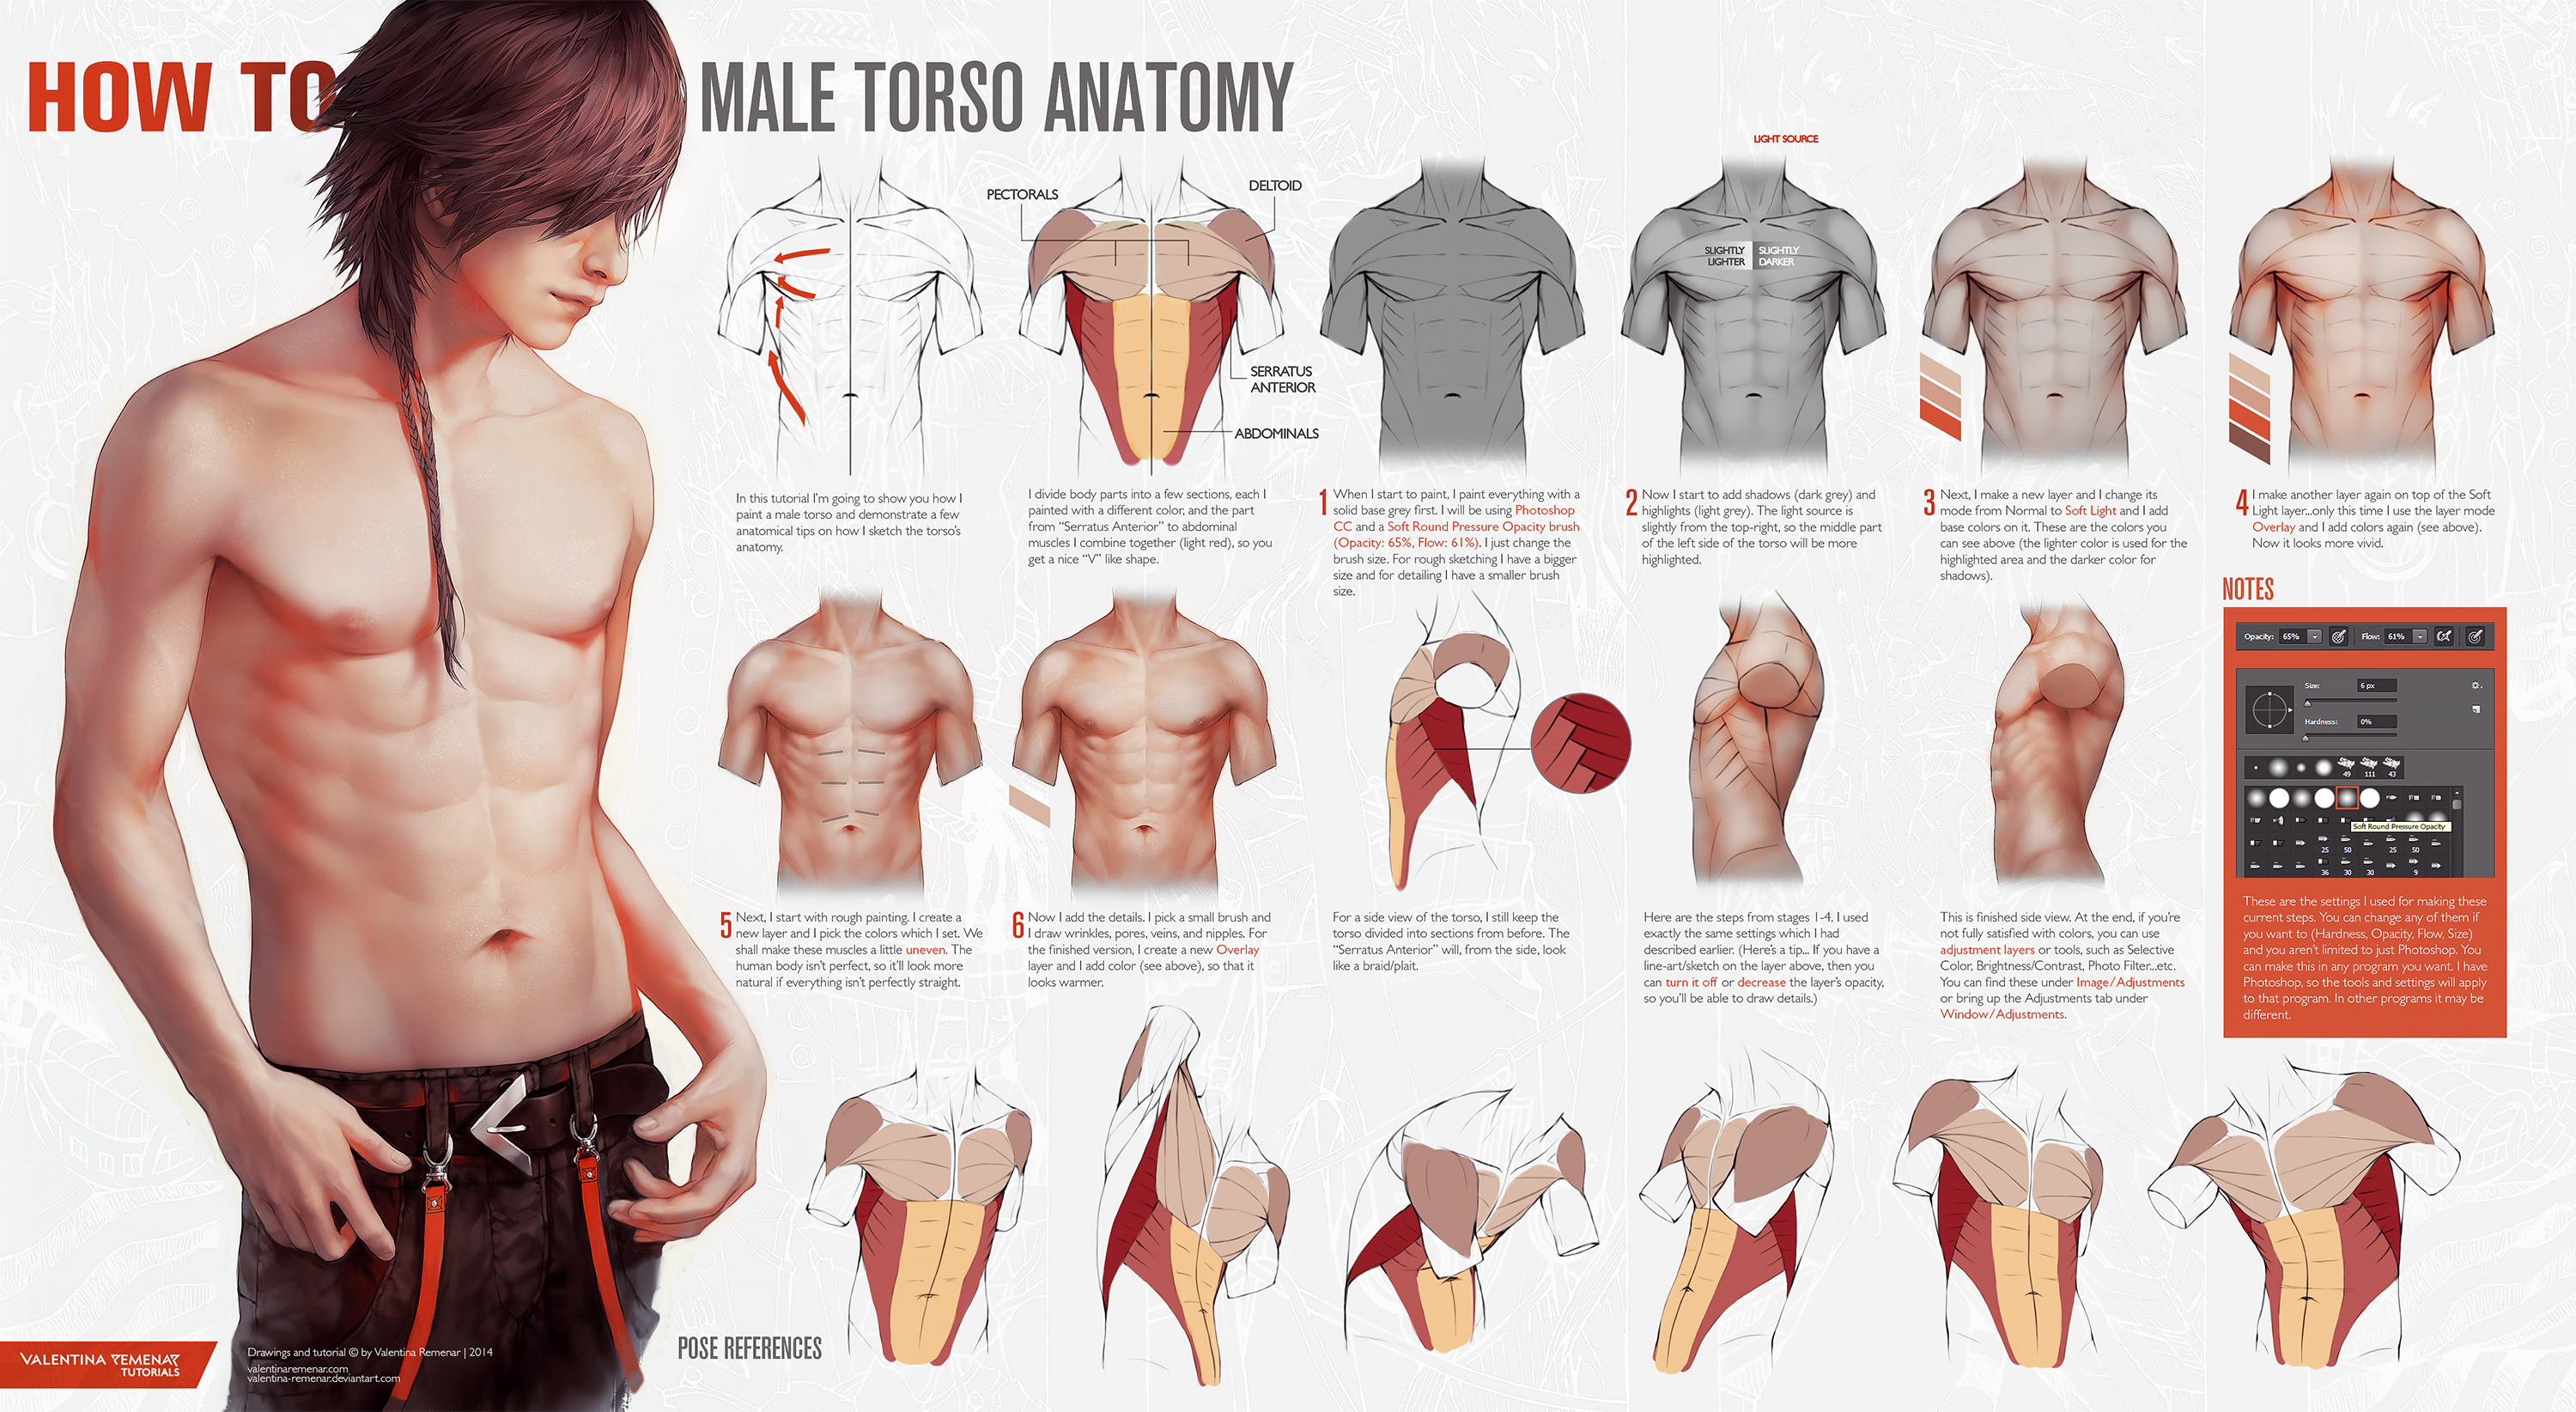 How To Male Torso Anatomy By Valentina Remenar On Deviantart